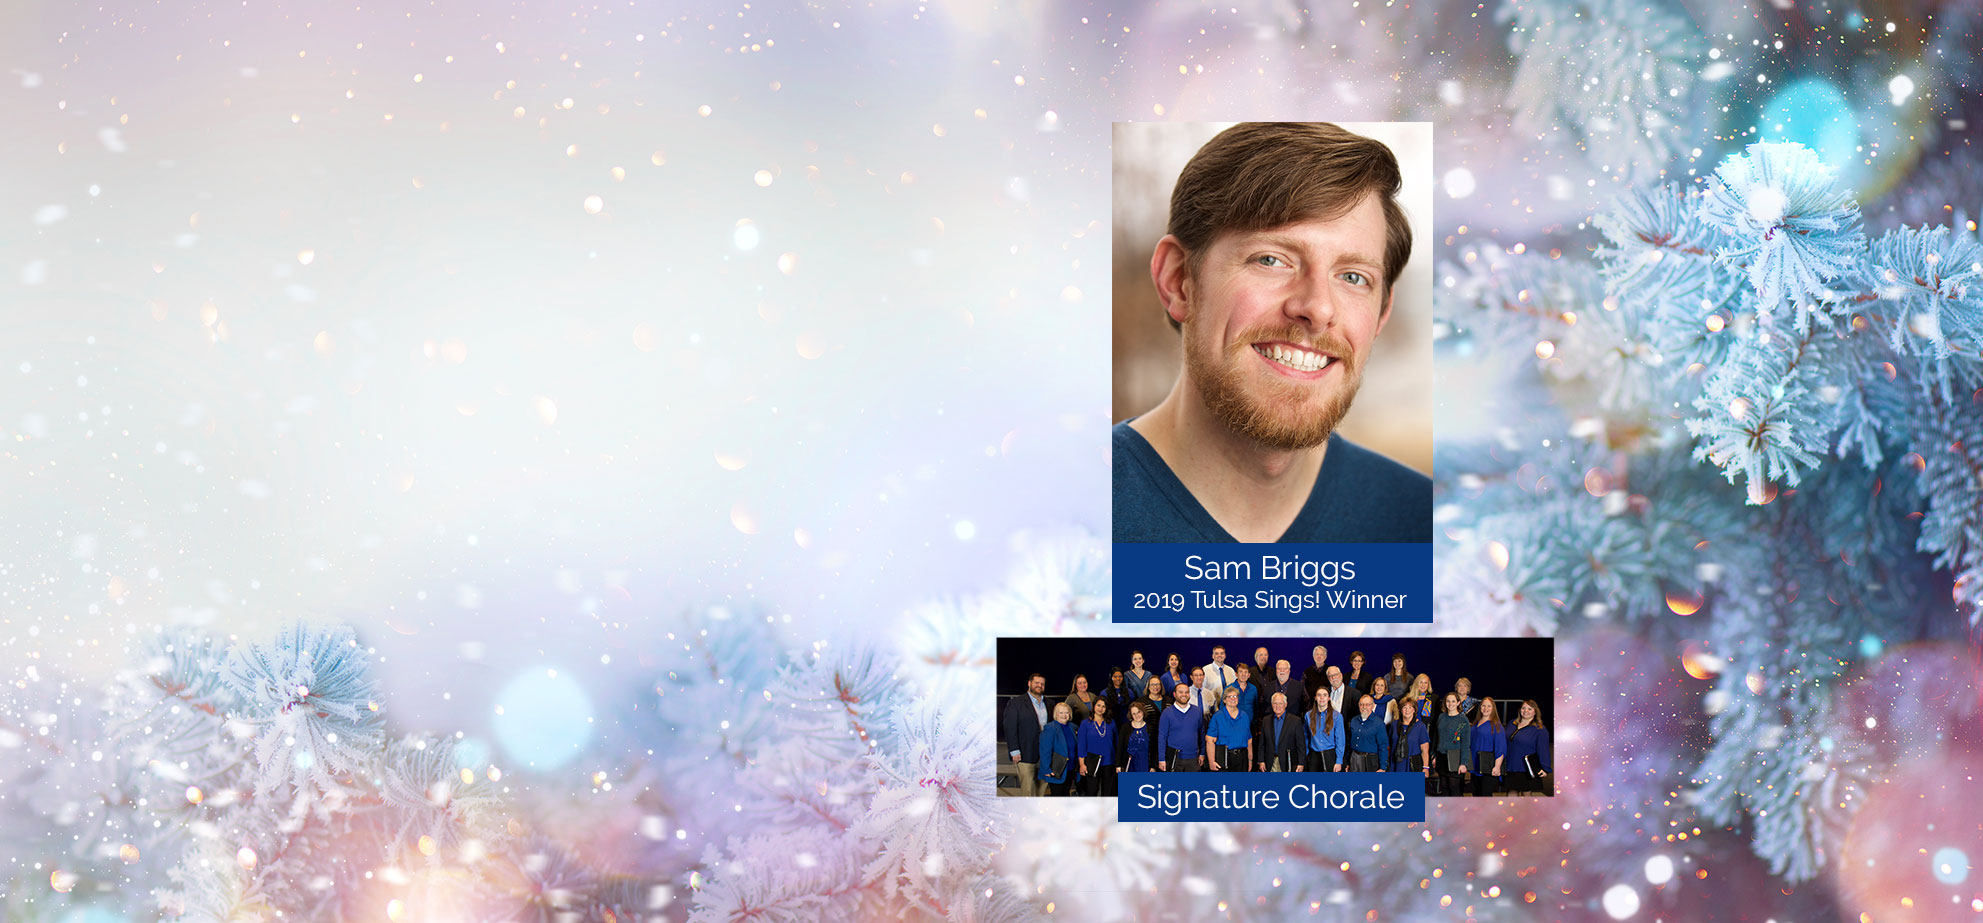 Sam Briggs, 2019 Tulsa Sings! Winner and Signature Chorale